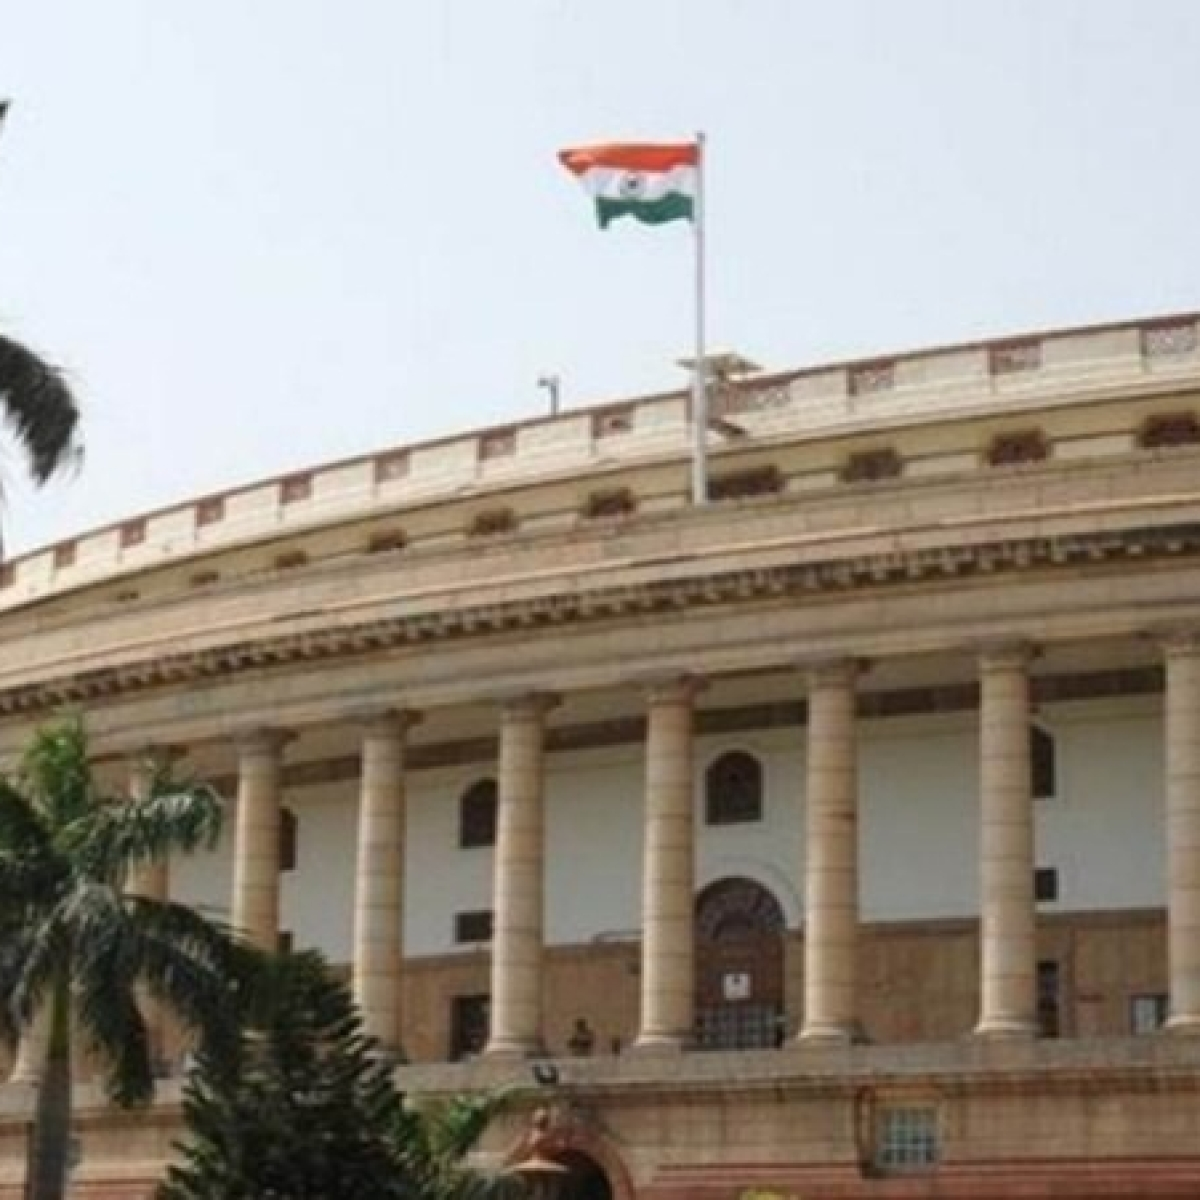 Parliament clears IBC amendments to protect stressed companies amid COVID-19